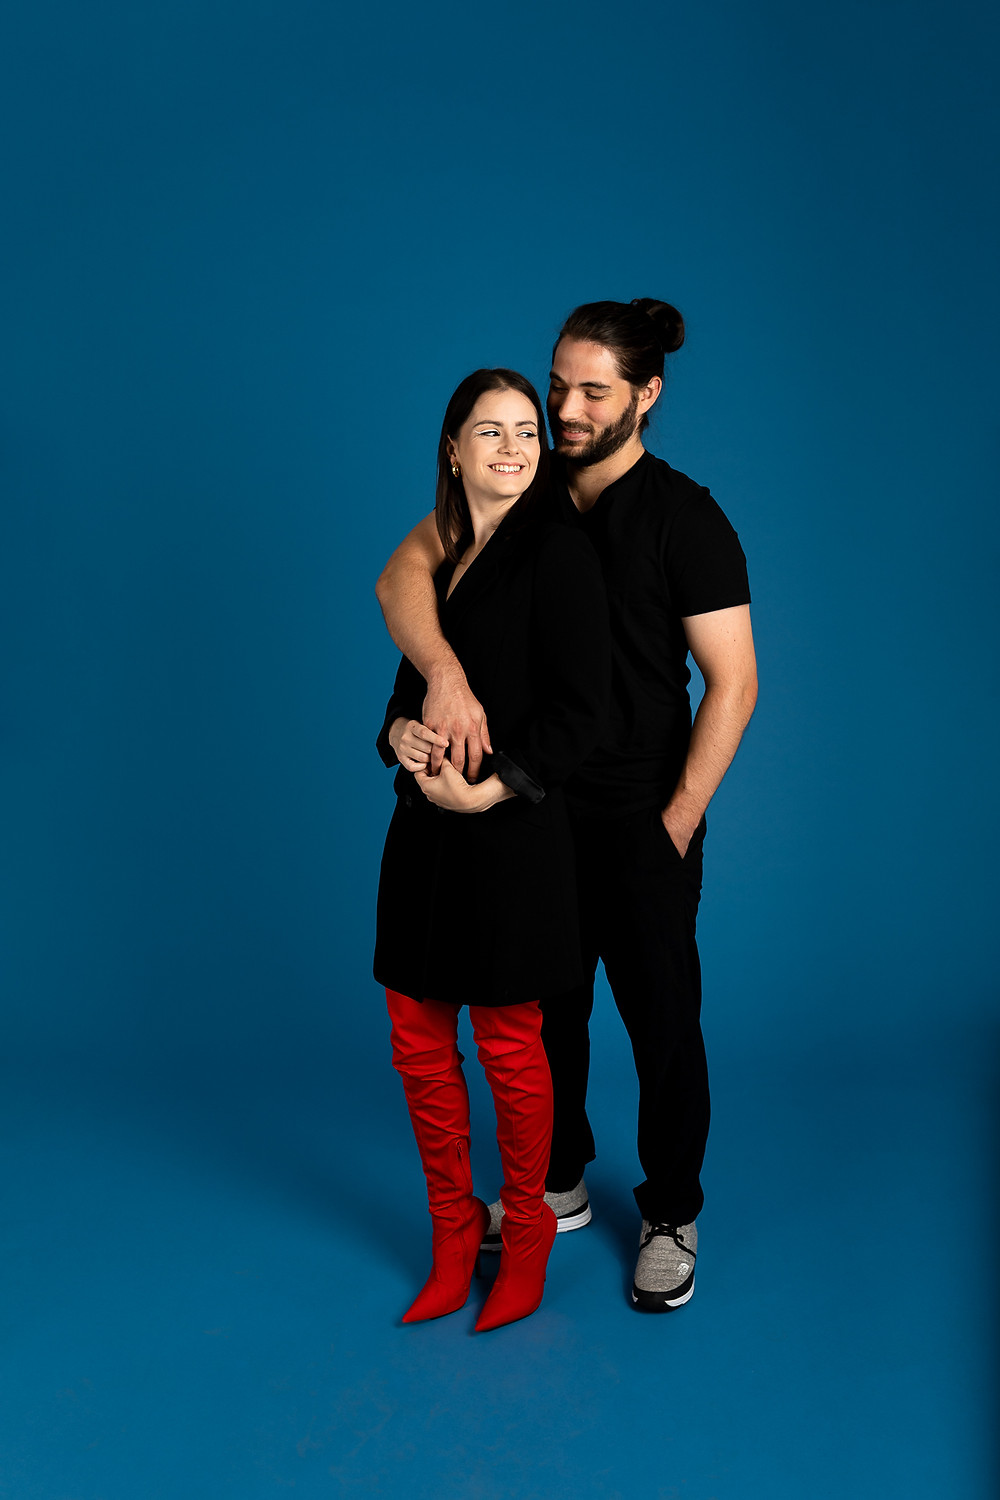 cute couple in a blue studio with man's arm around woman's shoulder, both man and woman smiling at each other